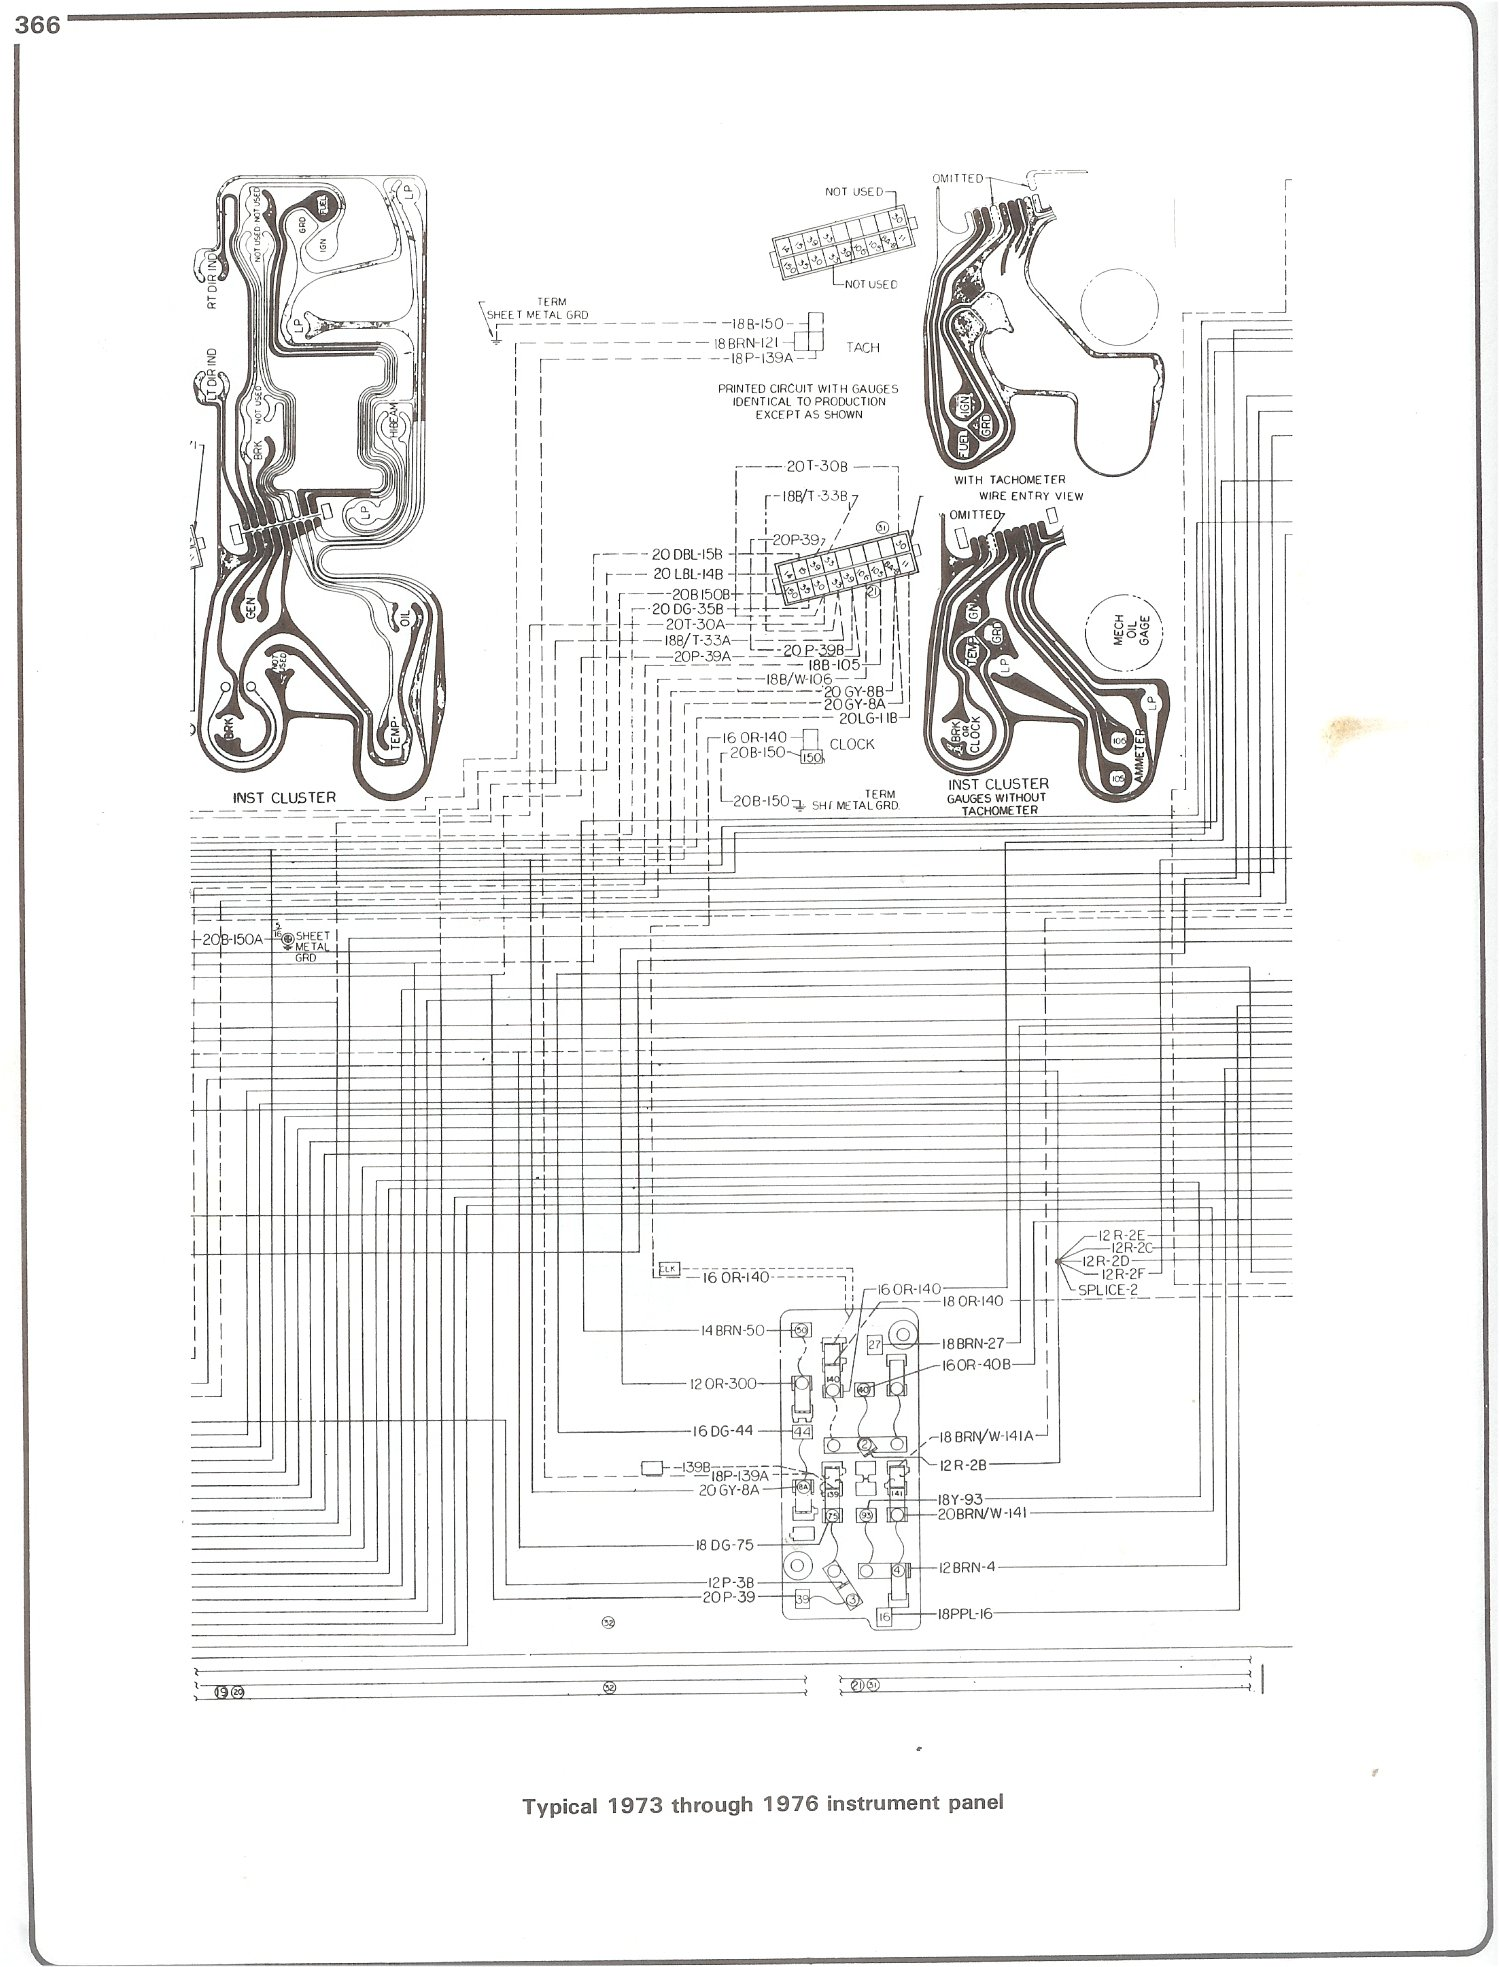 73 76_instrument complete 73 87 wiring diagrams 1982 chevy truck engine wiring diagram at creativeand.co